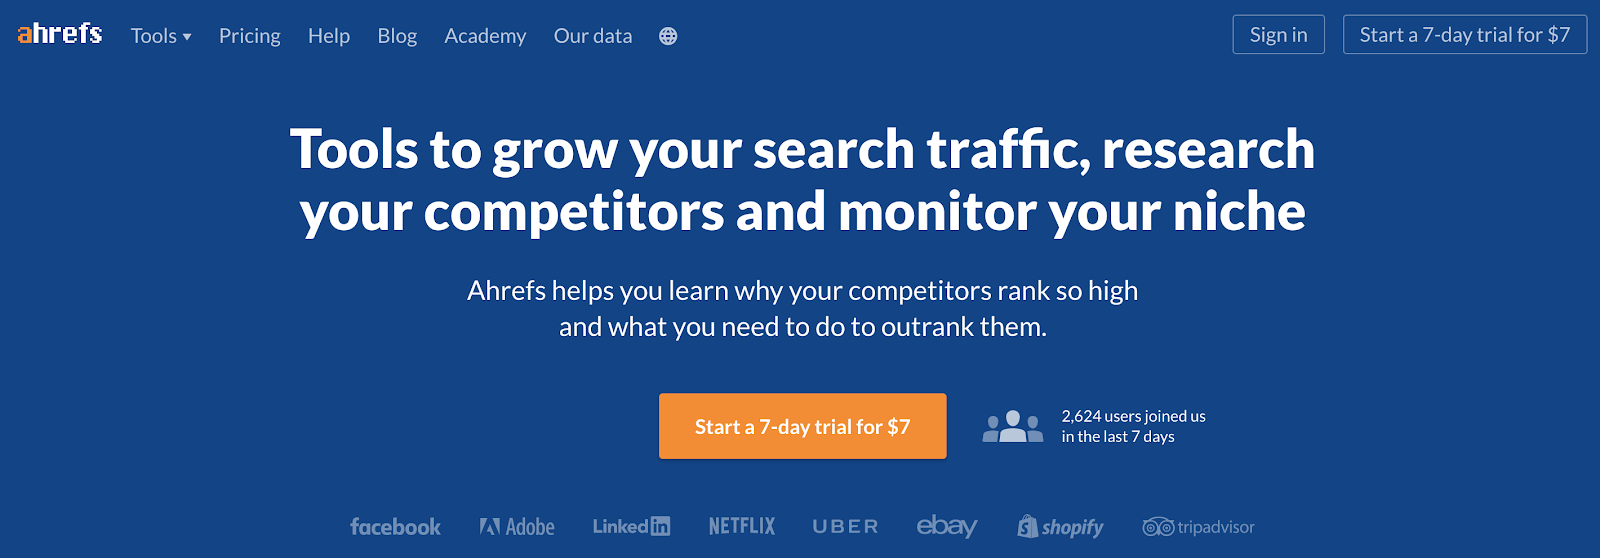 Ahrefs SEO Tool for Strategically Finding the Right Keywords to Blog About